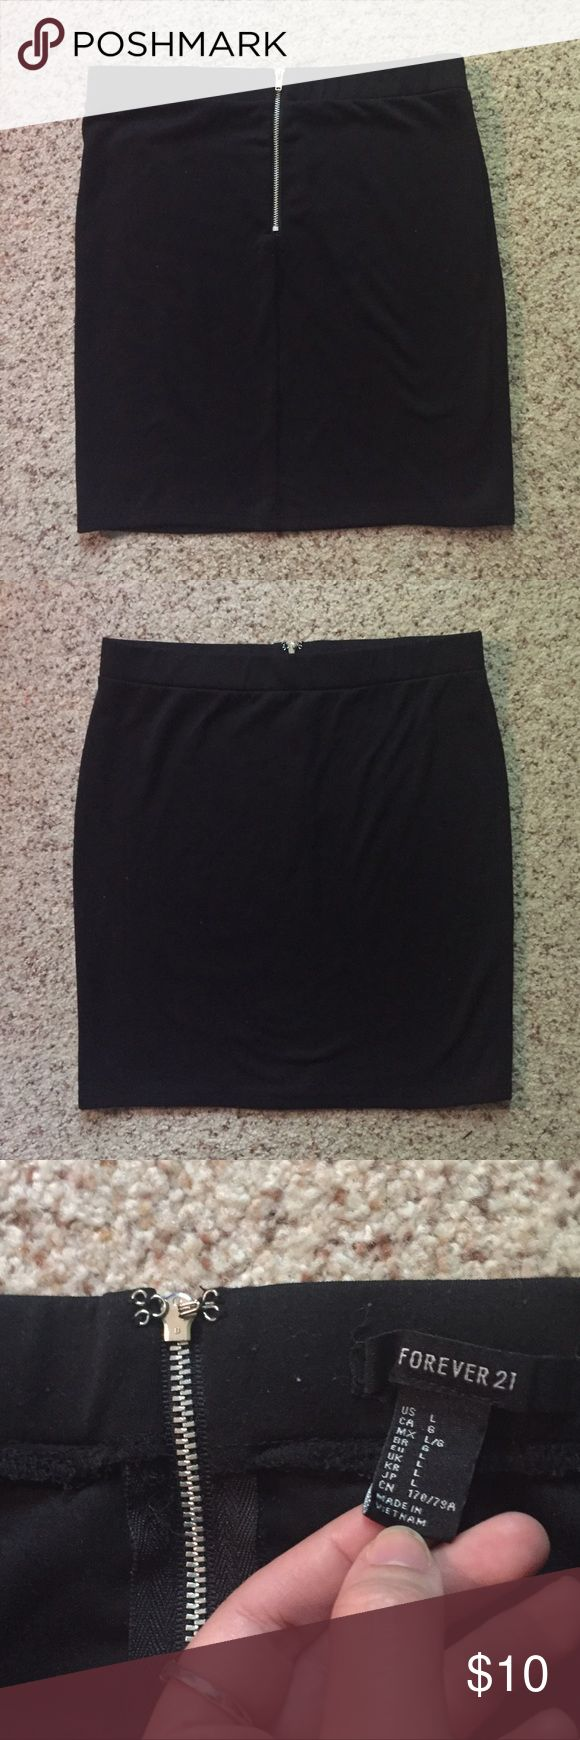 Forever21 Black Skirt Stretchy, tight fit. Says large but fits like a small or medium. Zipper and clasp in the back. Forever 21 Skirts Mini